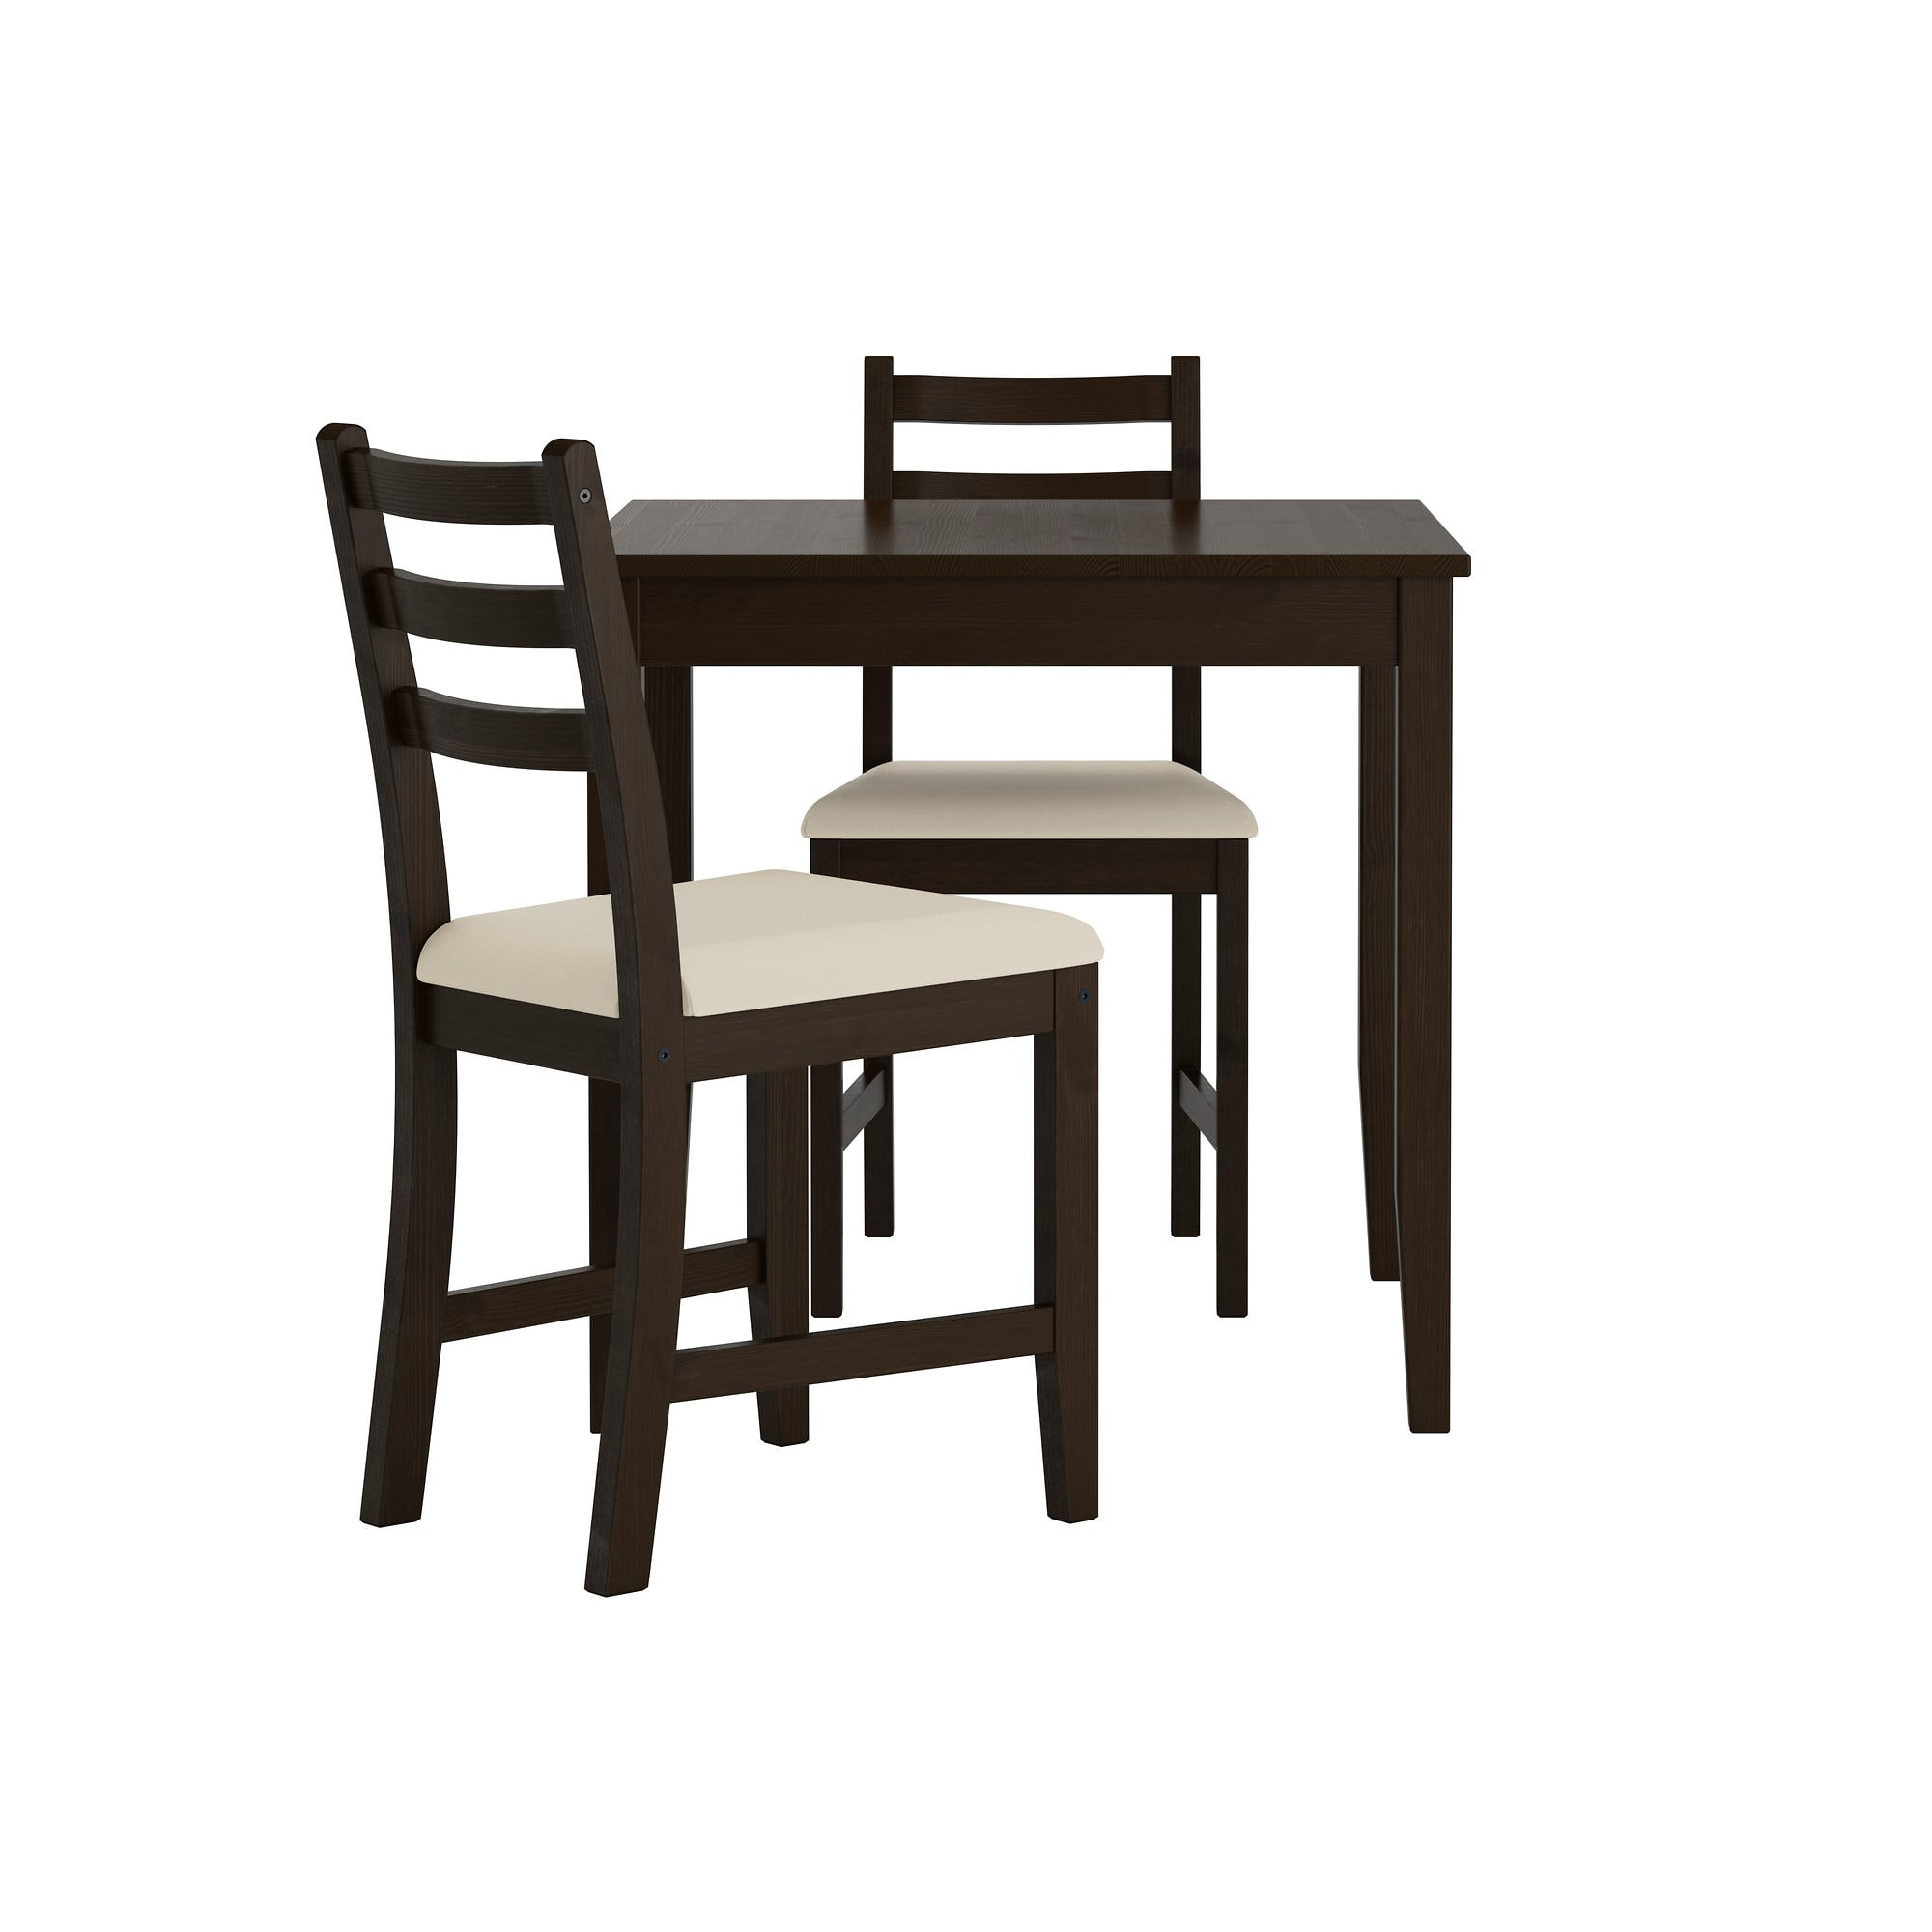 Best ideas about Ikea Dining Table . Save or Pin Small Dining Table Sets 2 Seater Dining Table & Chairs Now.